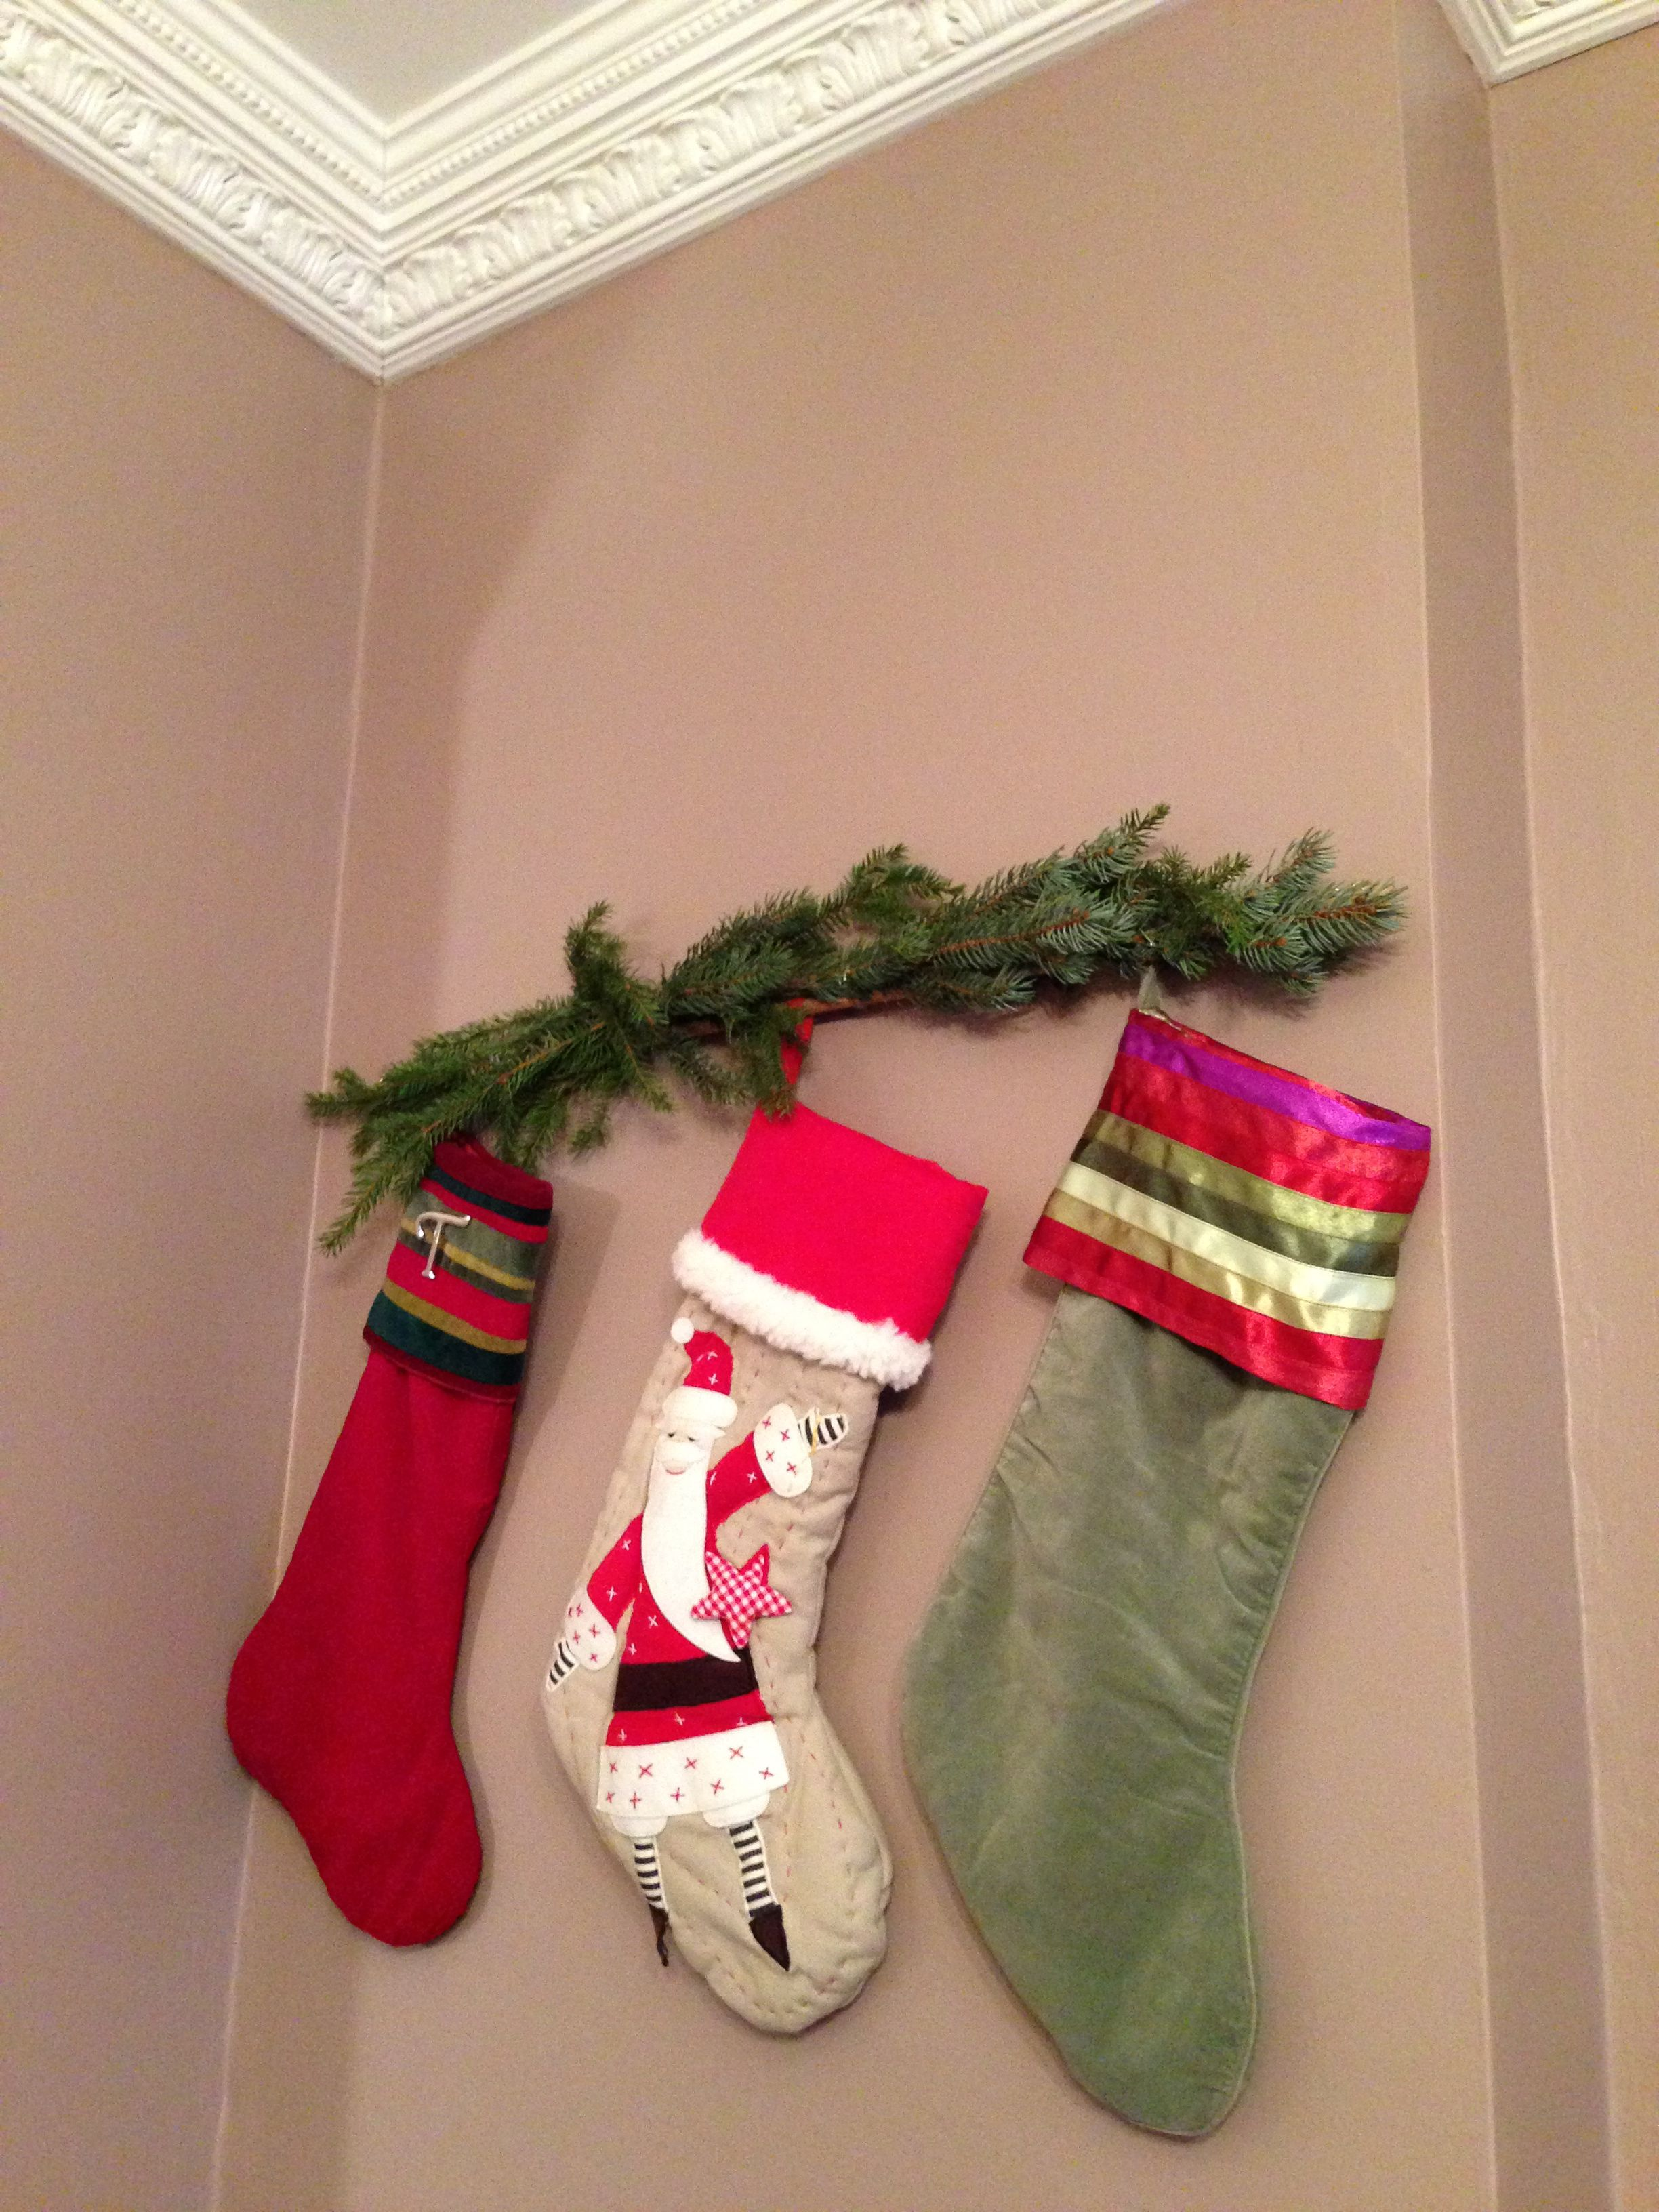 Hanging stockings without a mantle holiday ideas